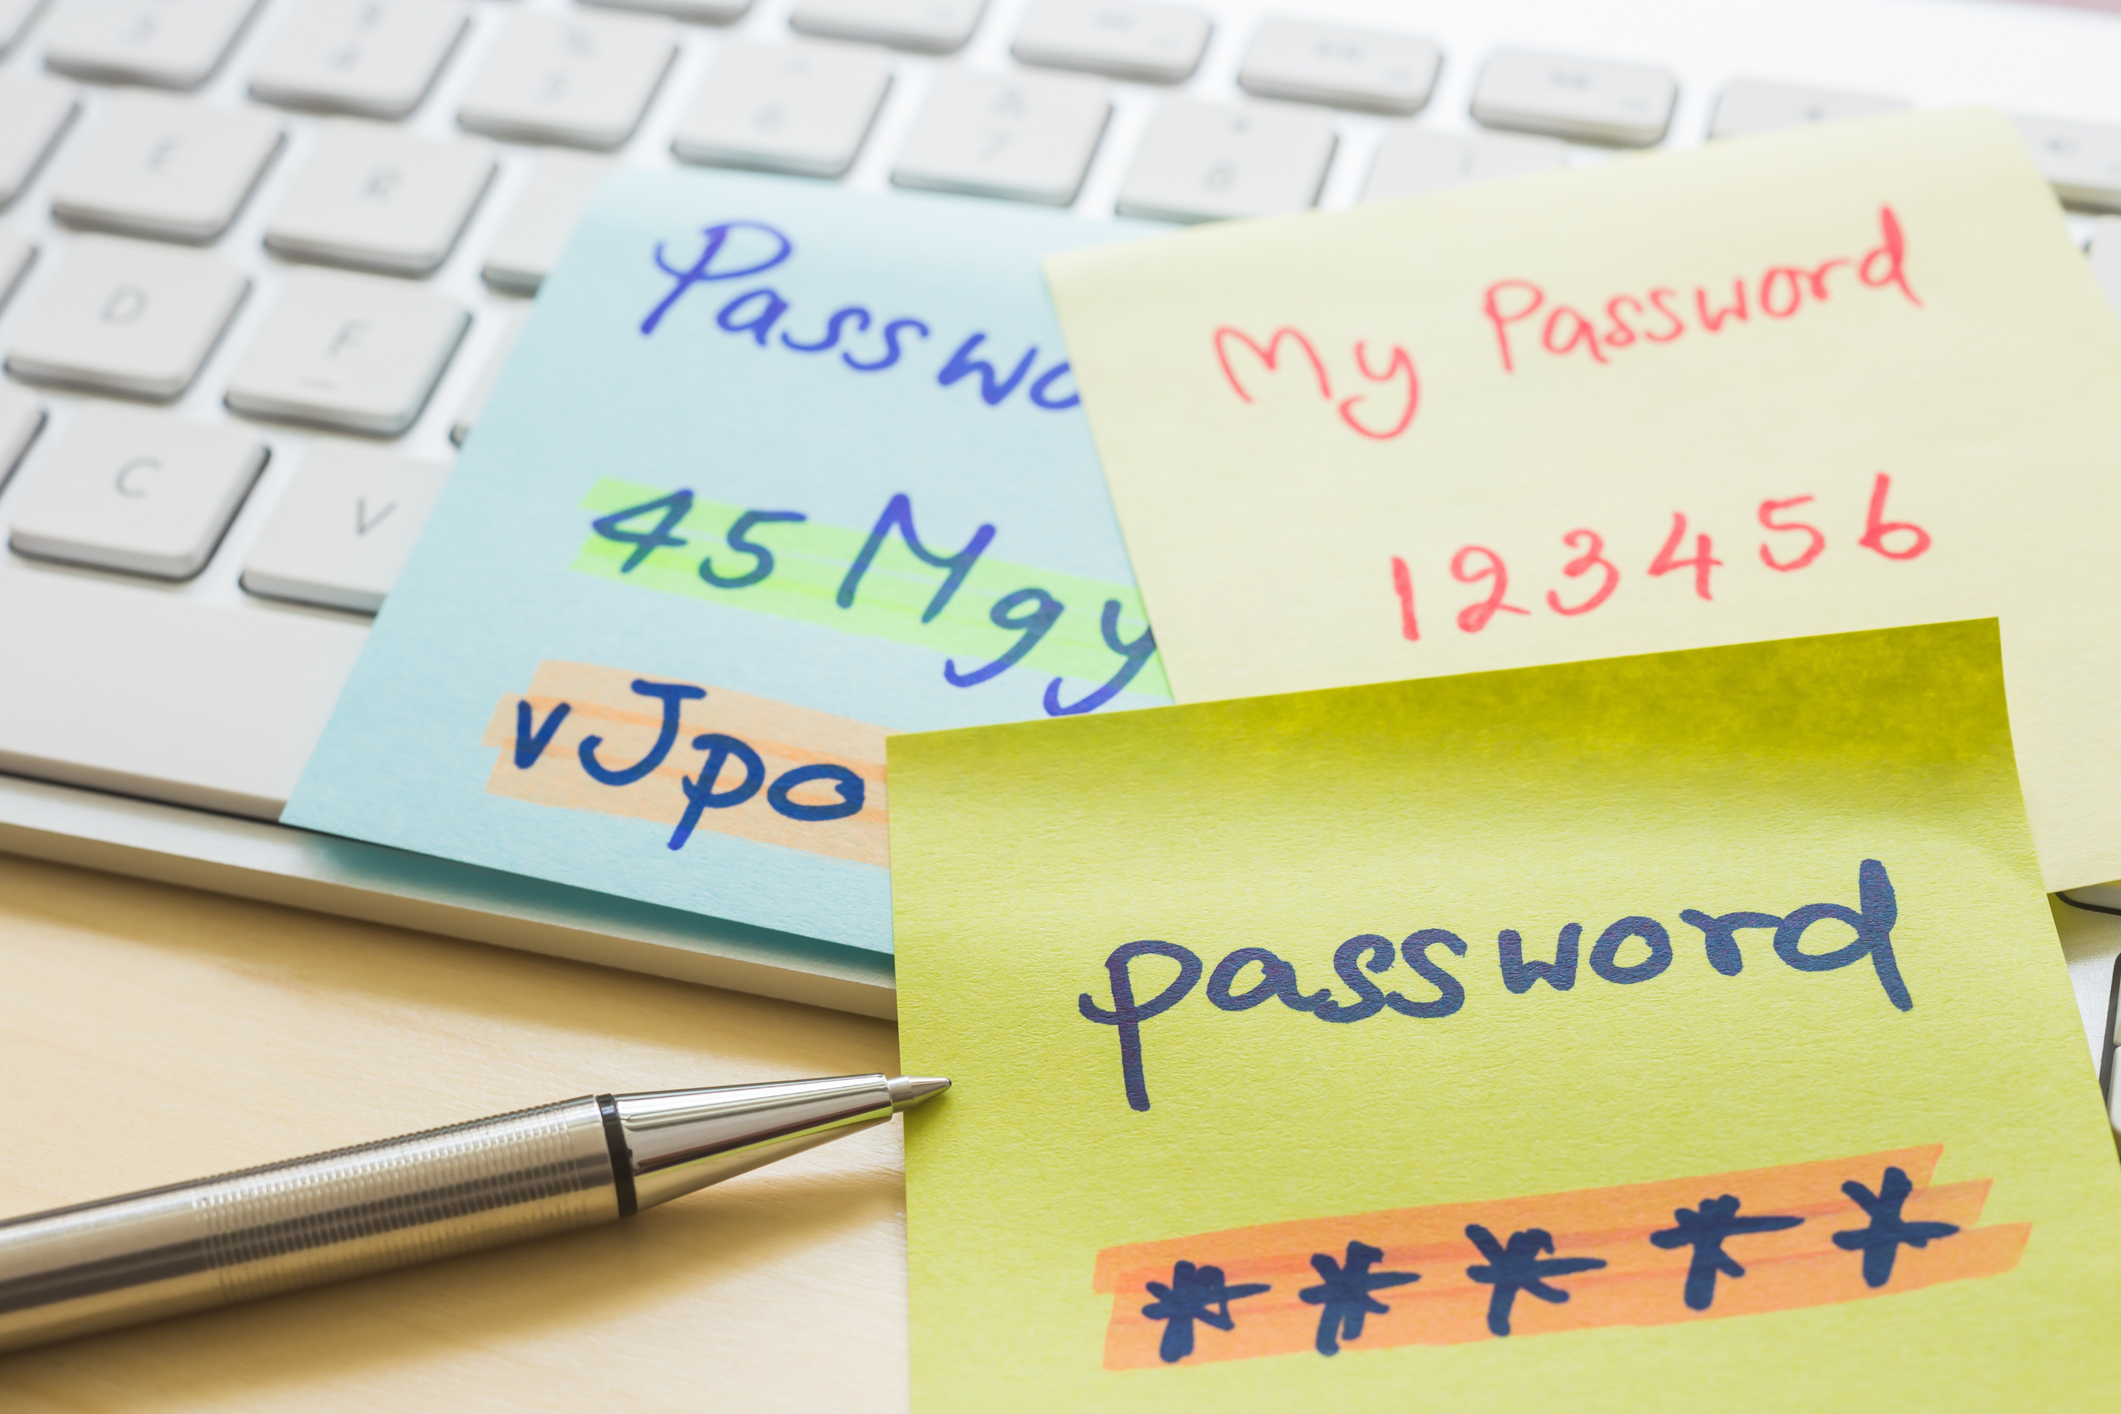 The fundamentals of a secure password